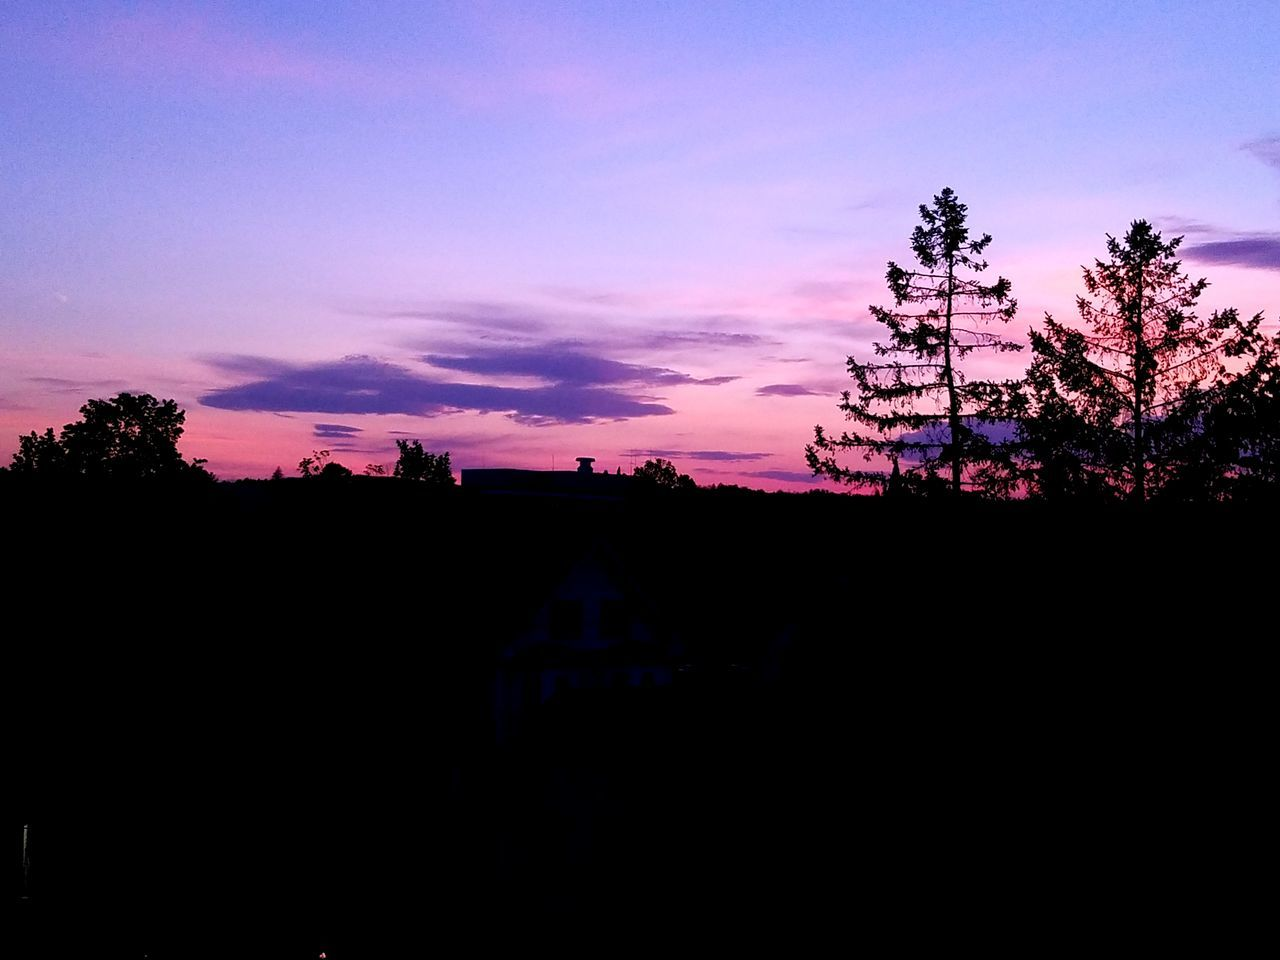 Sunset Silhouette Tree Sky Cloud - Sky Tranquility Outdoors Beauty In Nature Landscape Newhampshire Newhampshirephotography Concord Concord NH Tree Nature Dusk Sky Dusk Dusk In The City 603 Beauty In Nature